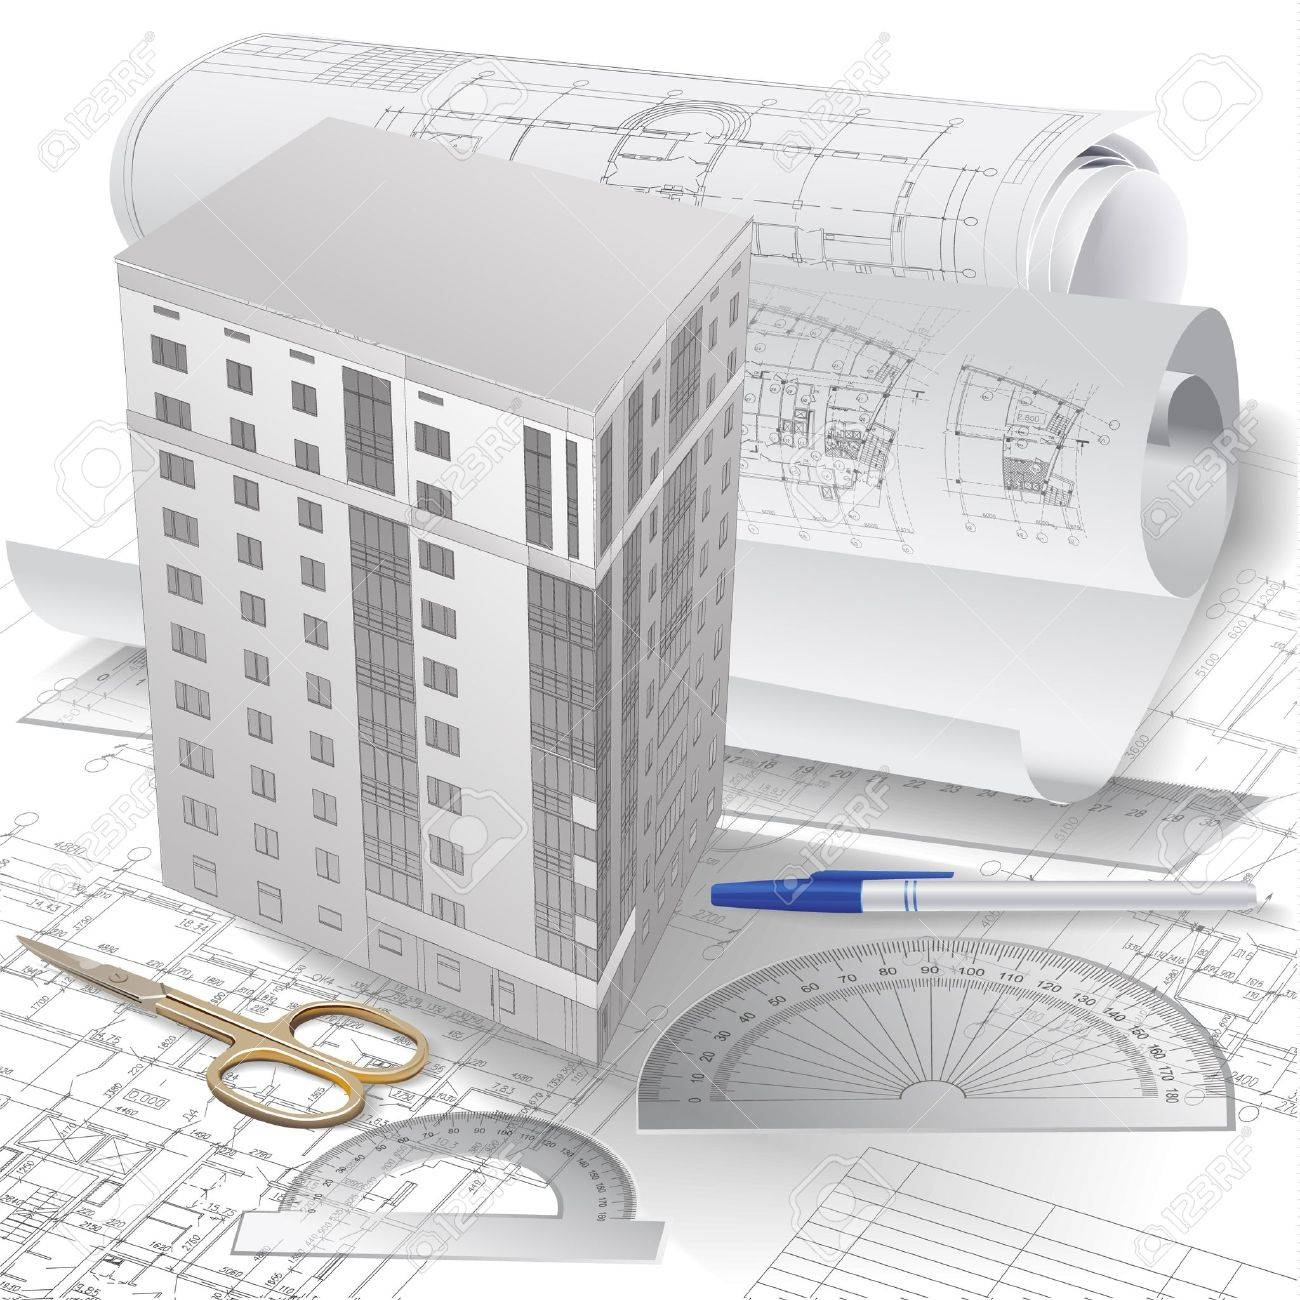 Architectural Background With 3 D Building Model Drawing Tools And Rolls Of Drawings Stock